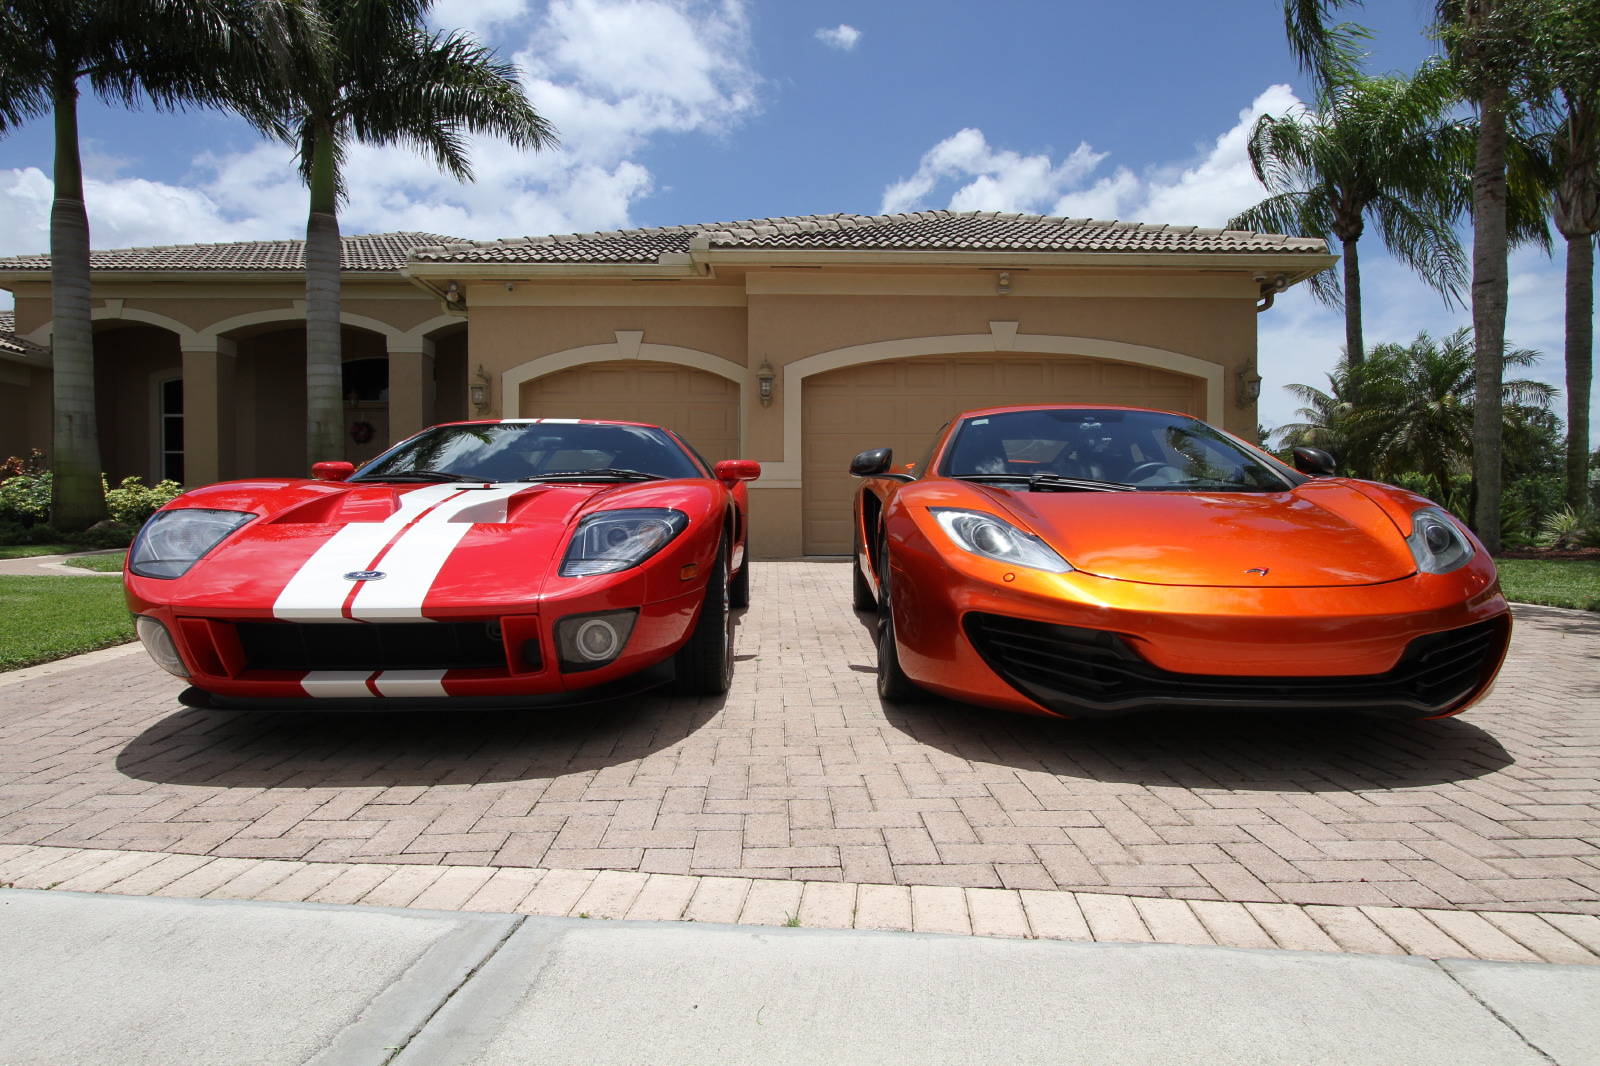 mclaren-mp4-12c-volcano-orange-vs-ford-gt-red-white-005